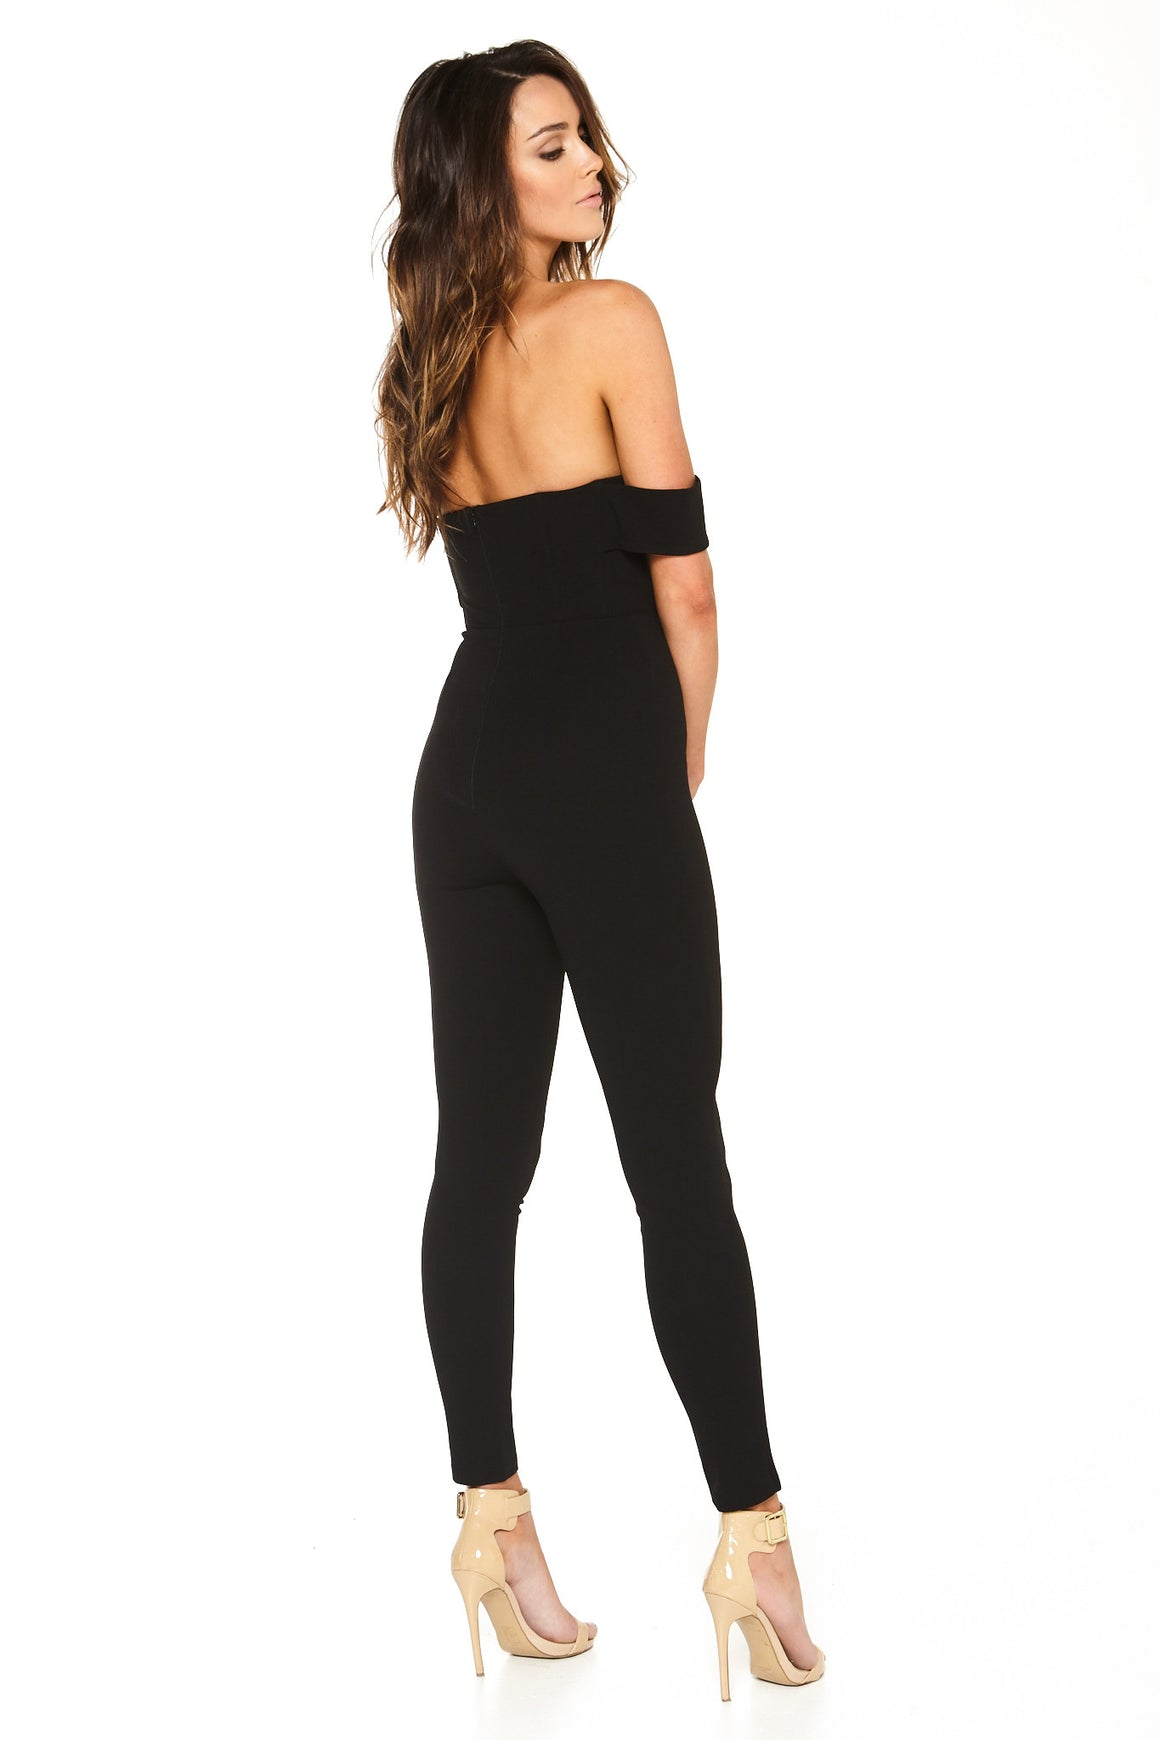 Cynthia Off-Shoulder Jumpsuit - Black